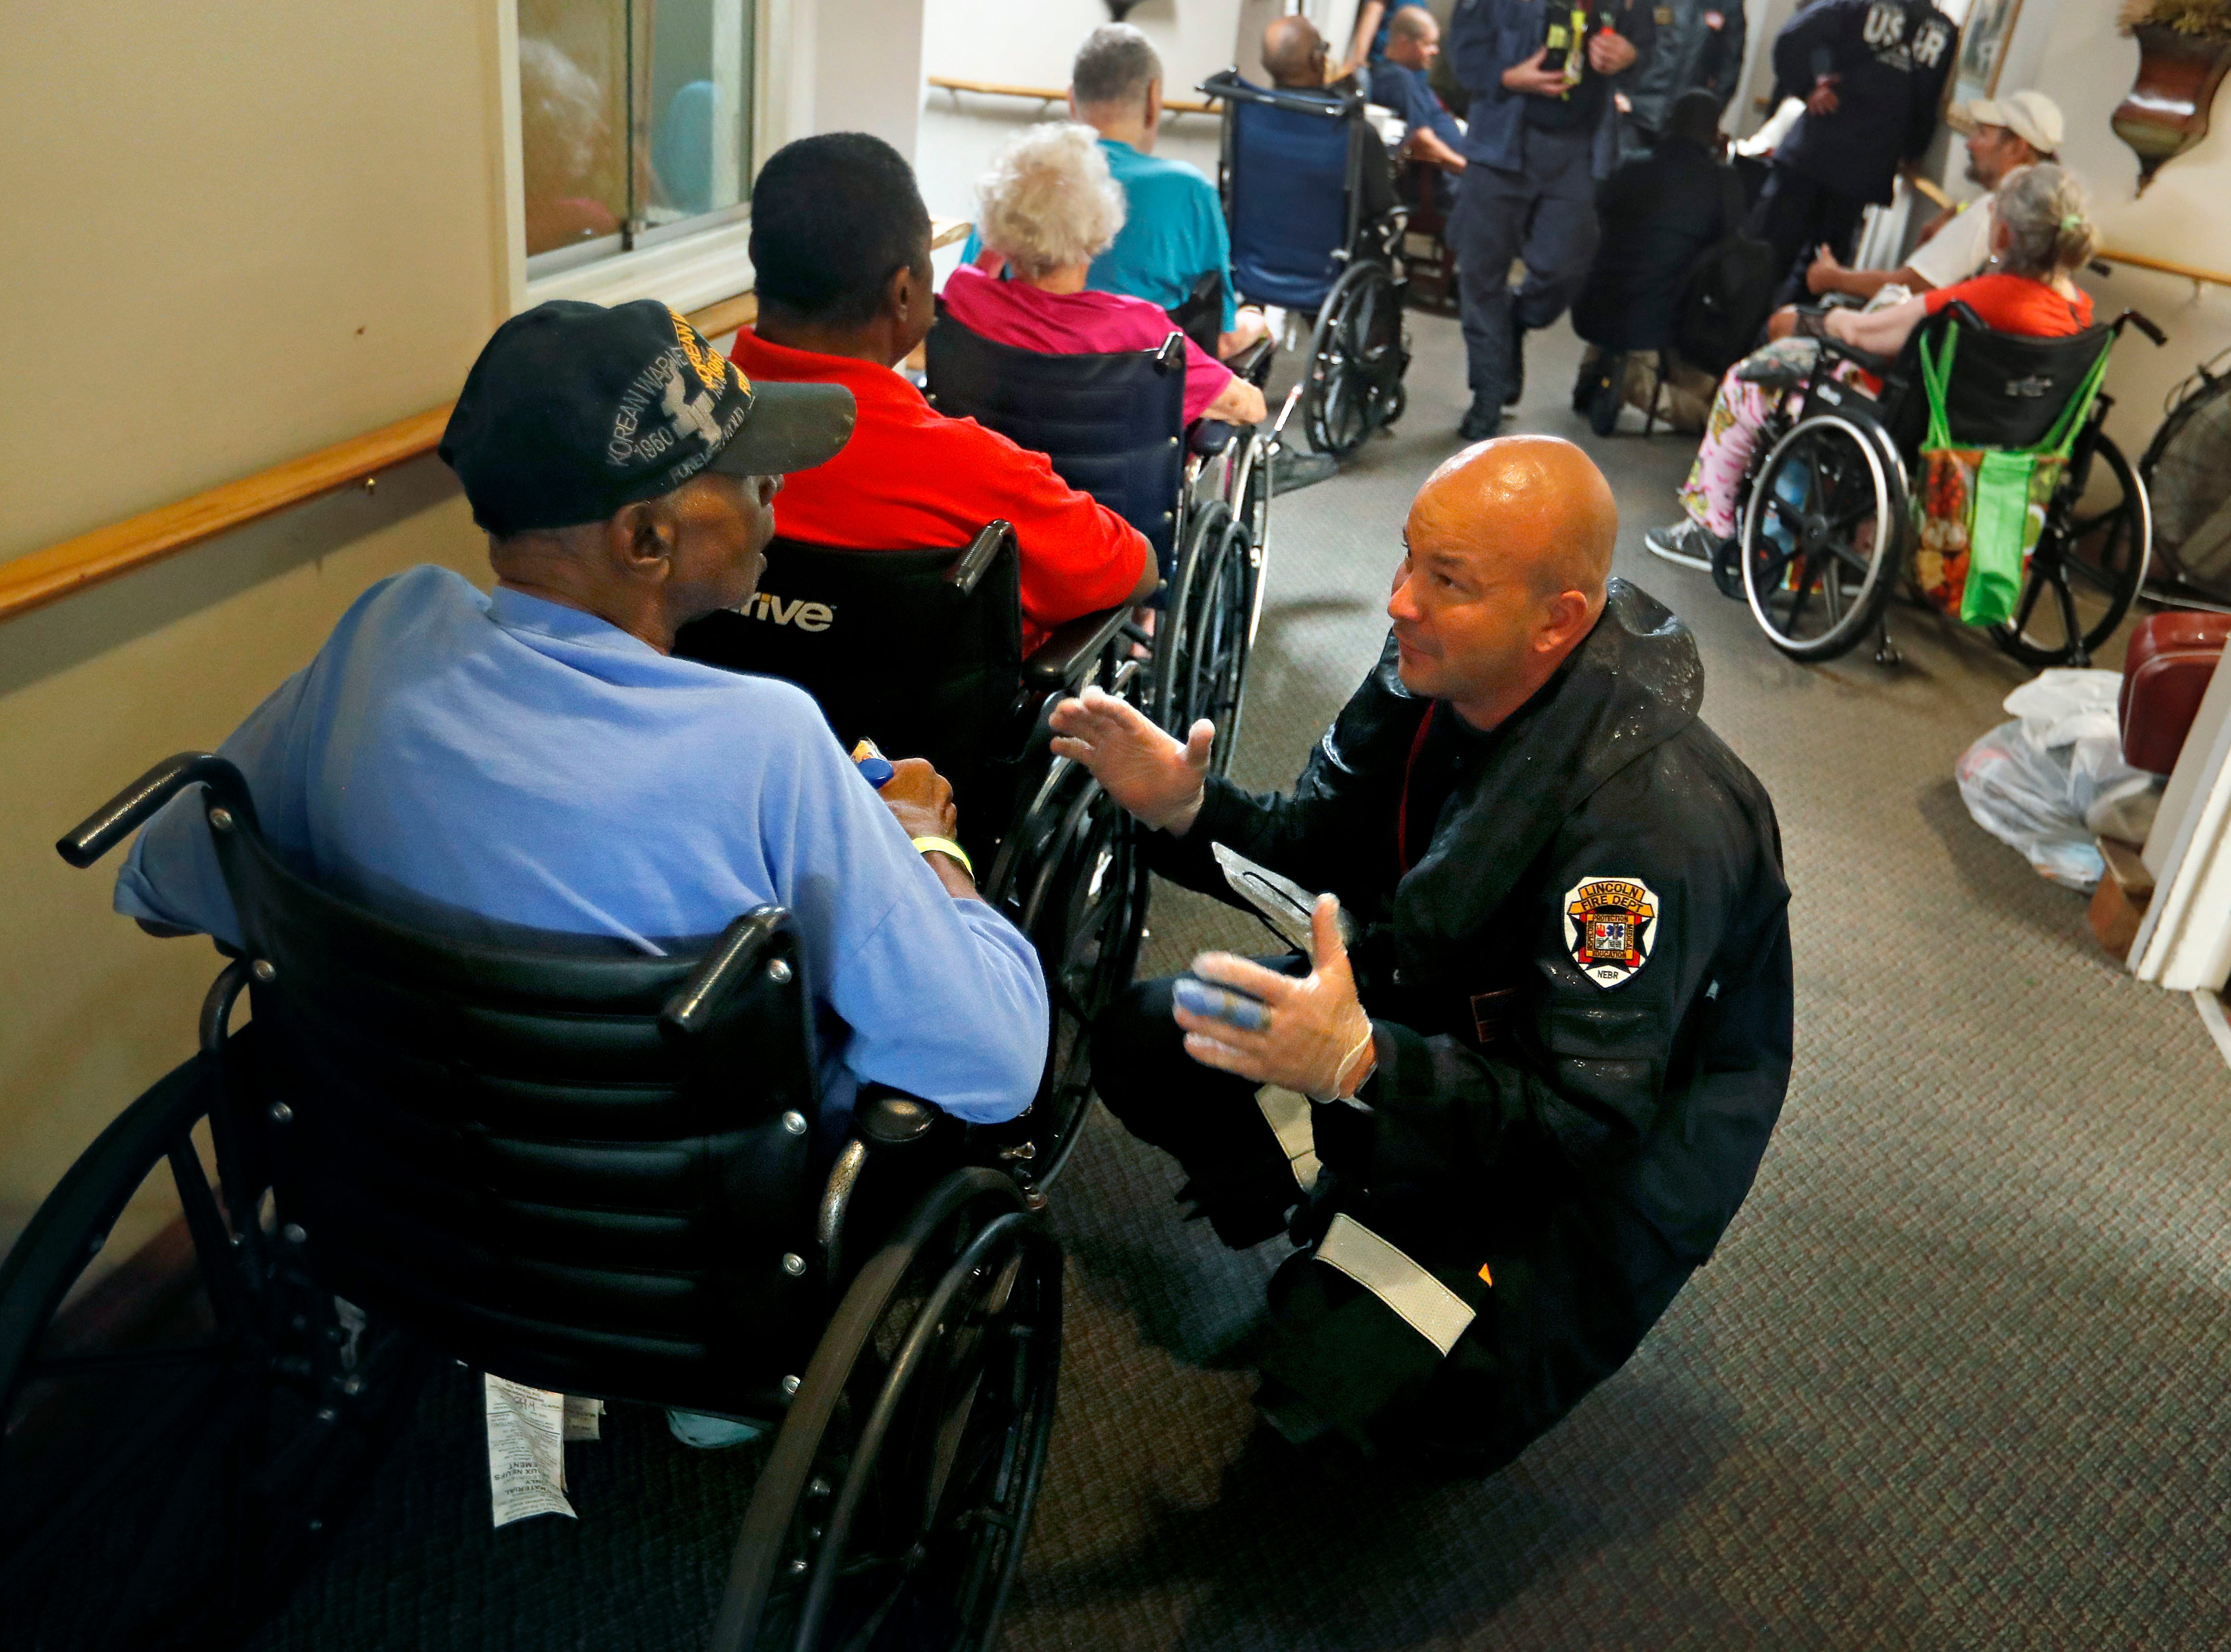 Mathew Meyer of the Nebraska Task Force 1 urban search and rescue team, right, talks with Korea war veteran Roman Wiggs, 87, as they evacuate an assisted living facility to a church as a precaution against potential flooding the city could see from tropical storm Florence in Fayetteville, N.C., Saturday, Sept. 15, 2018.